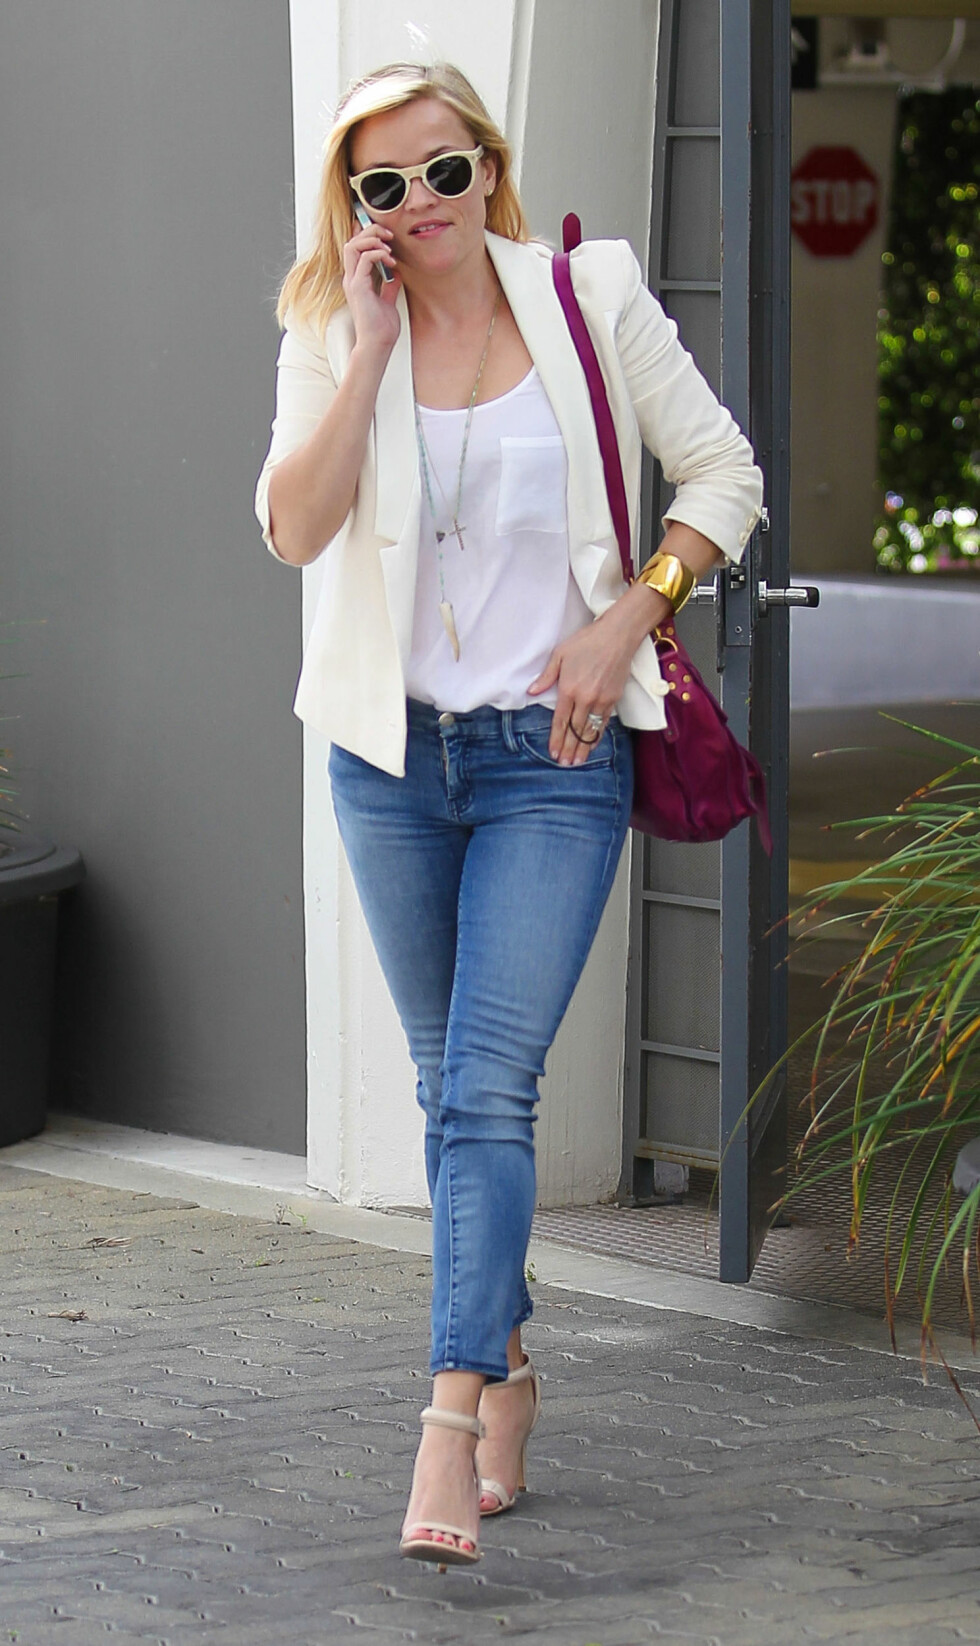 FEMININ: Hollywoodstjerne og Oscar-vinner Reese Witherspoon ser smashing ut i jeans, hvit t-skjorte og hvit smokinginspirert blazer.  Foto:  All Over Press